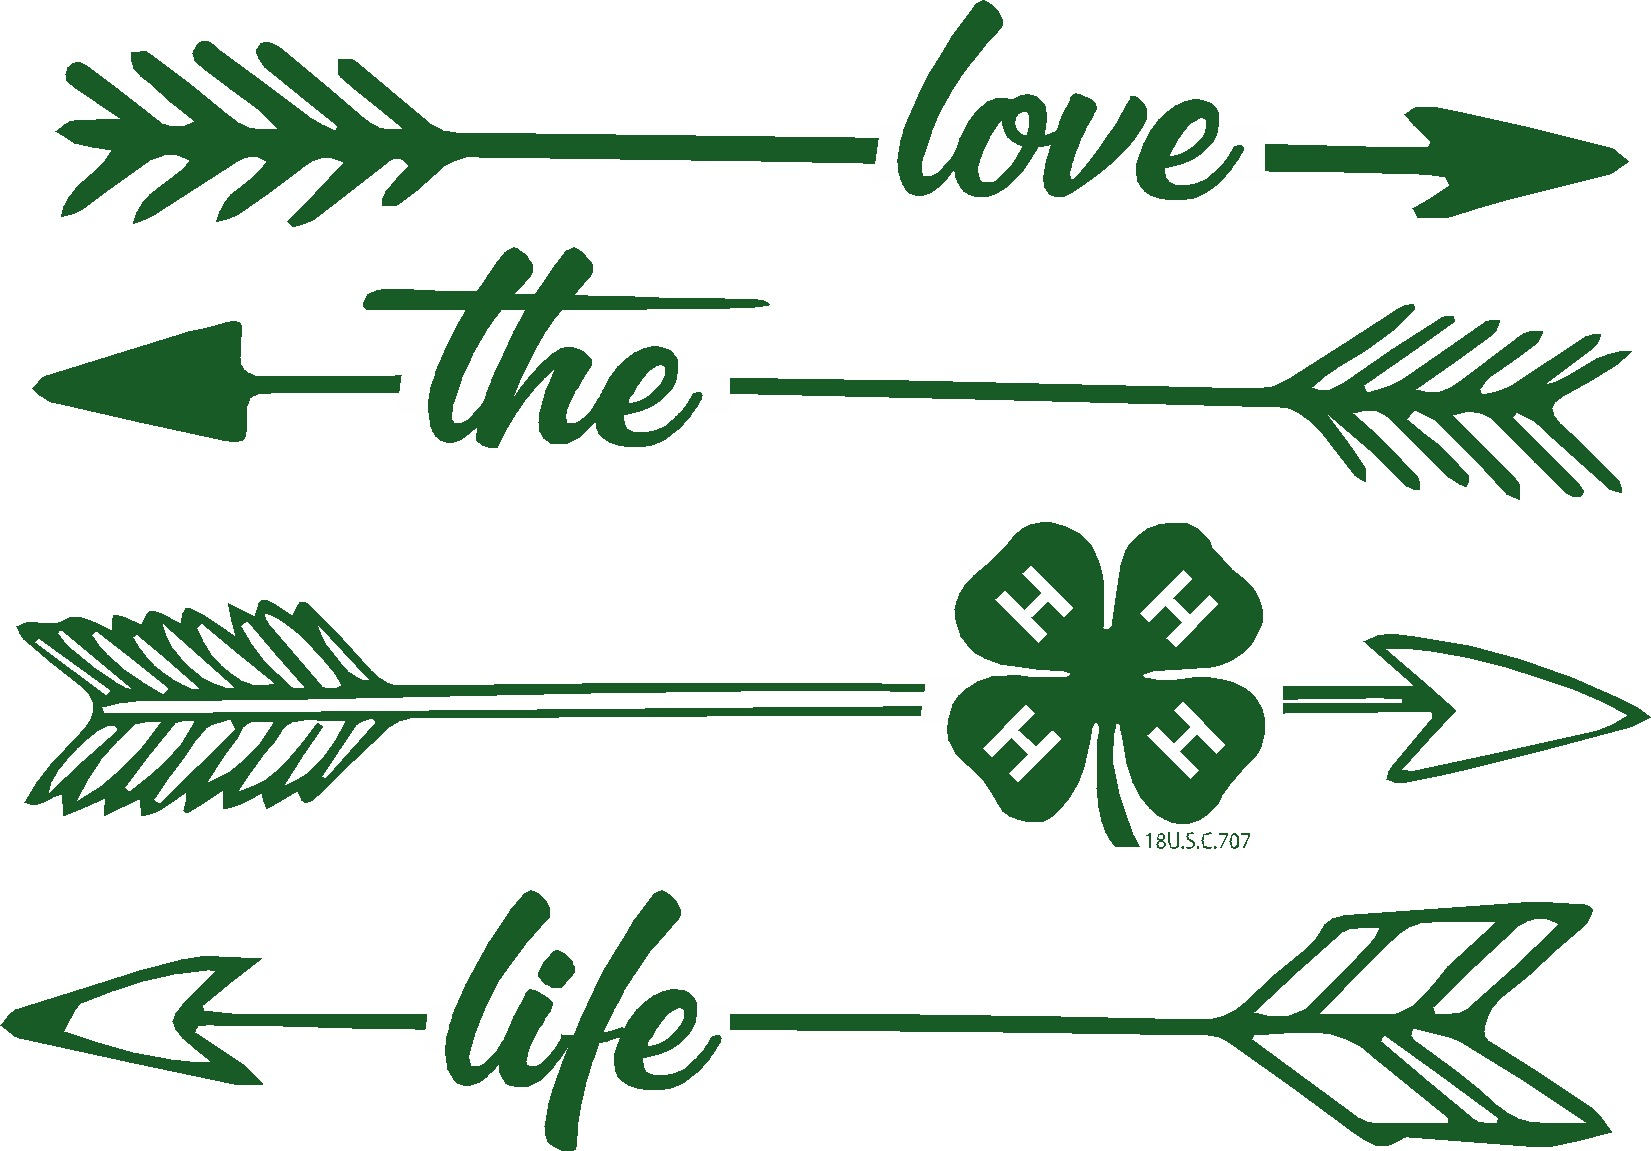 Love_The_4-H_Life_8-3-18